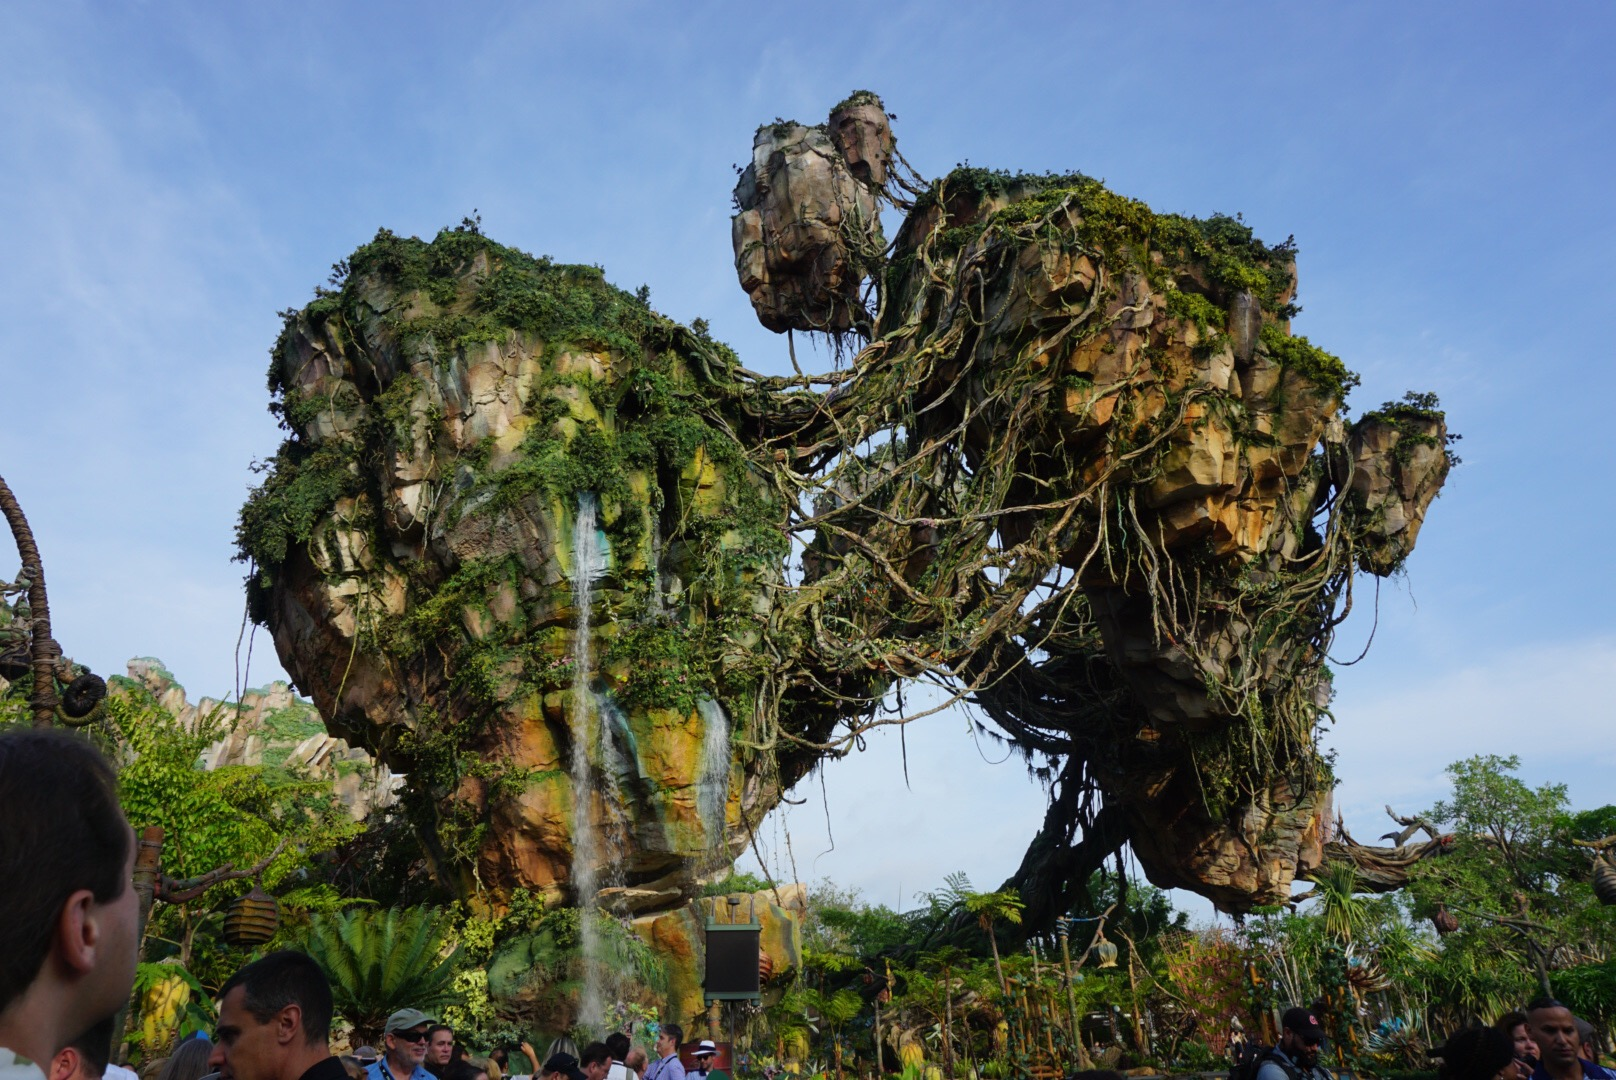 The floating islands at Pandora: The World of Avatar were amazing. Look at that waterfall!